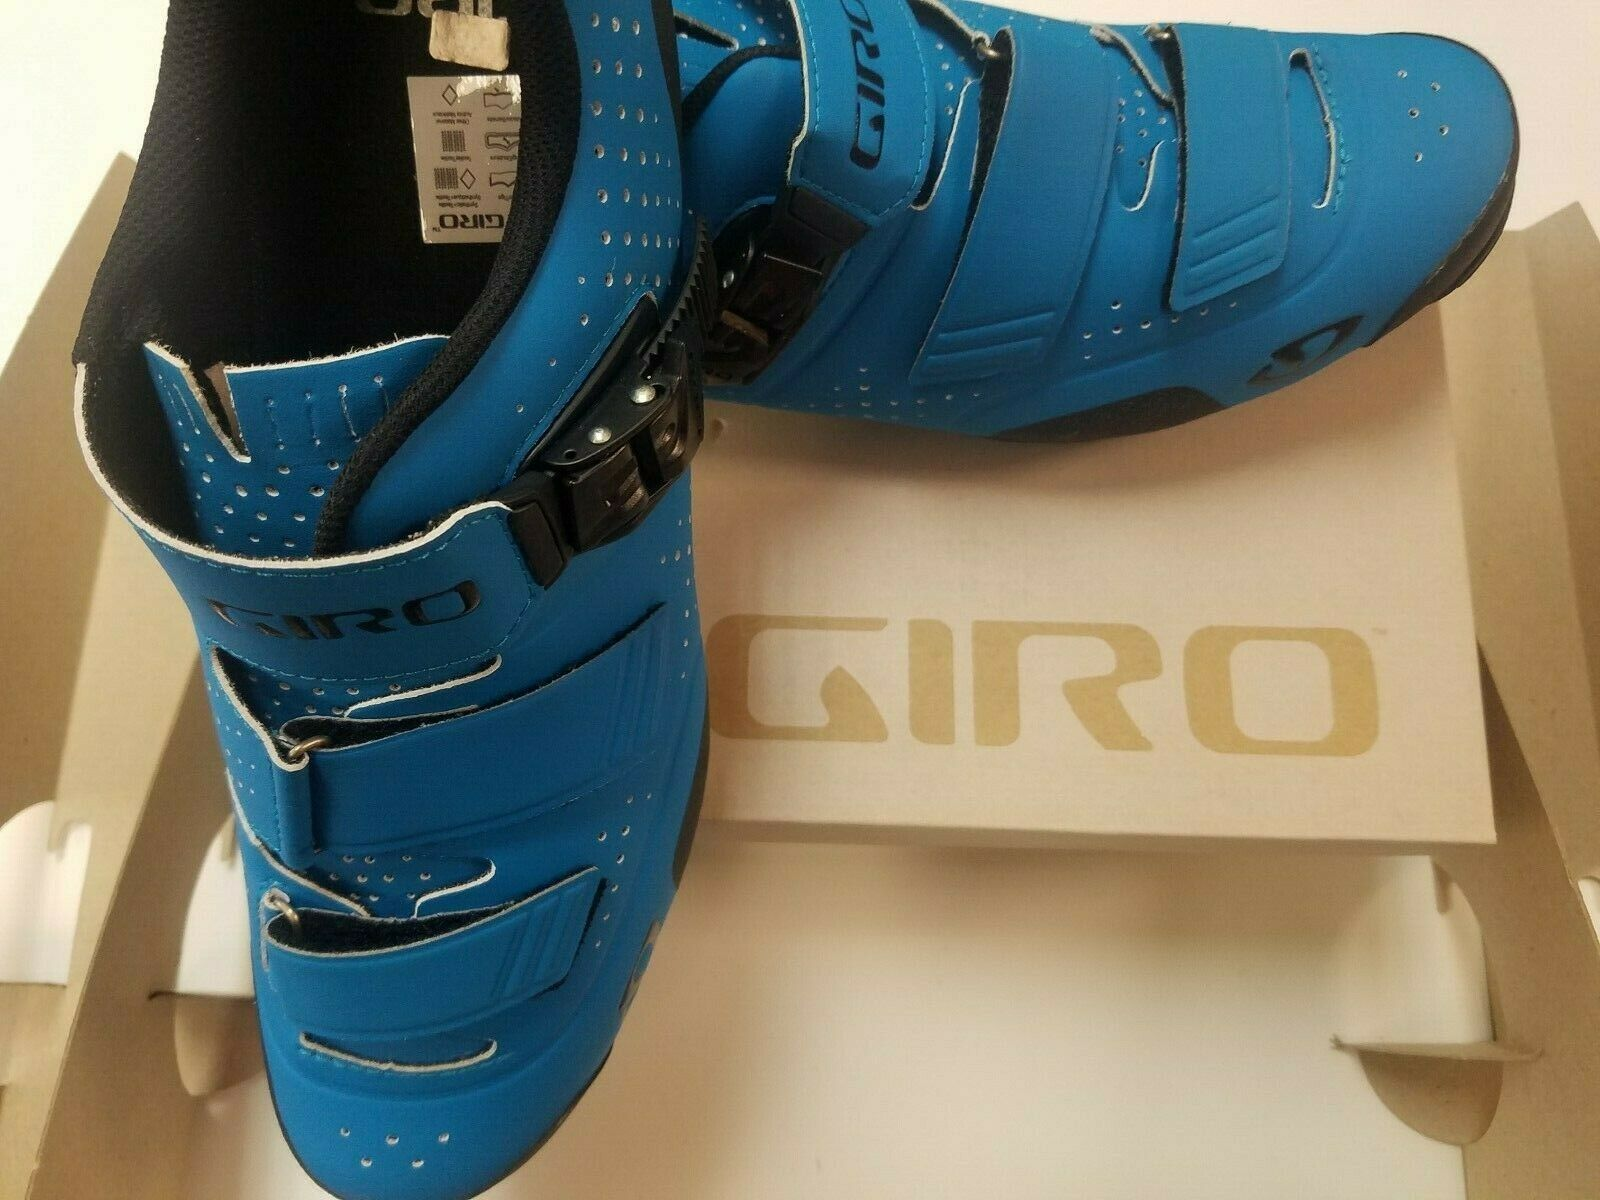 NEW in Box Giro Privateer R Mens Cycling zapatos zapatos zapatos EU 48 US 13.5 MTB zapatos 52c90a